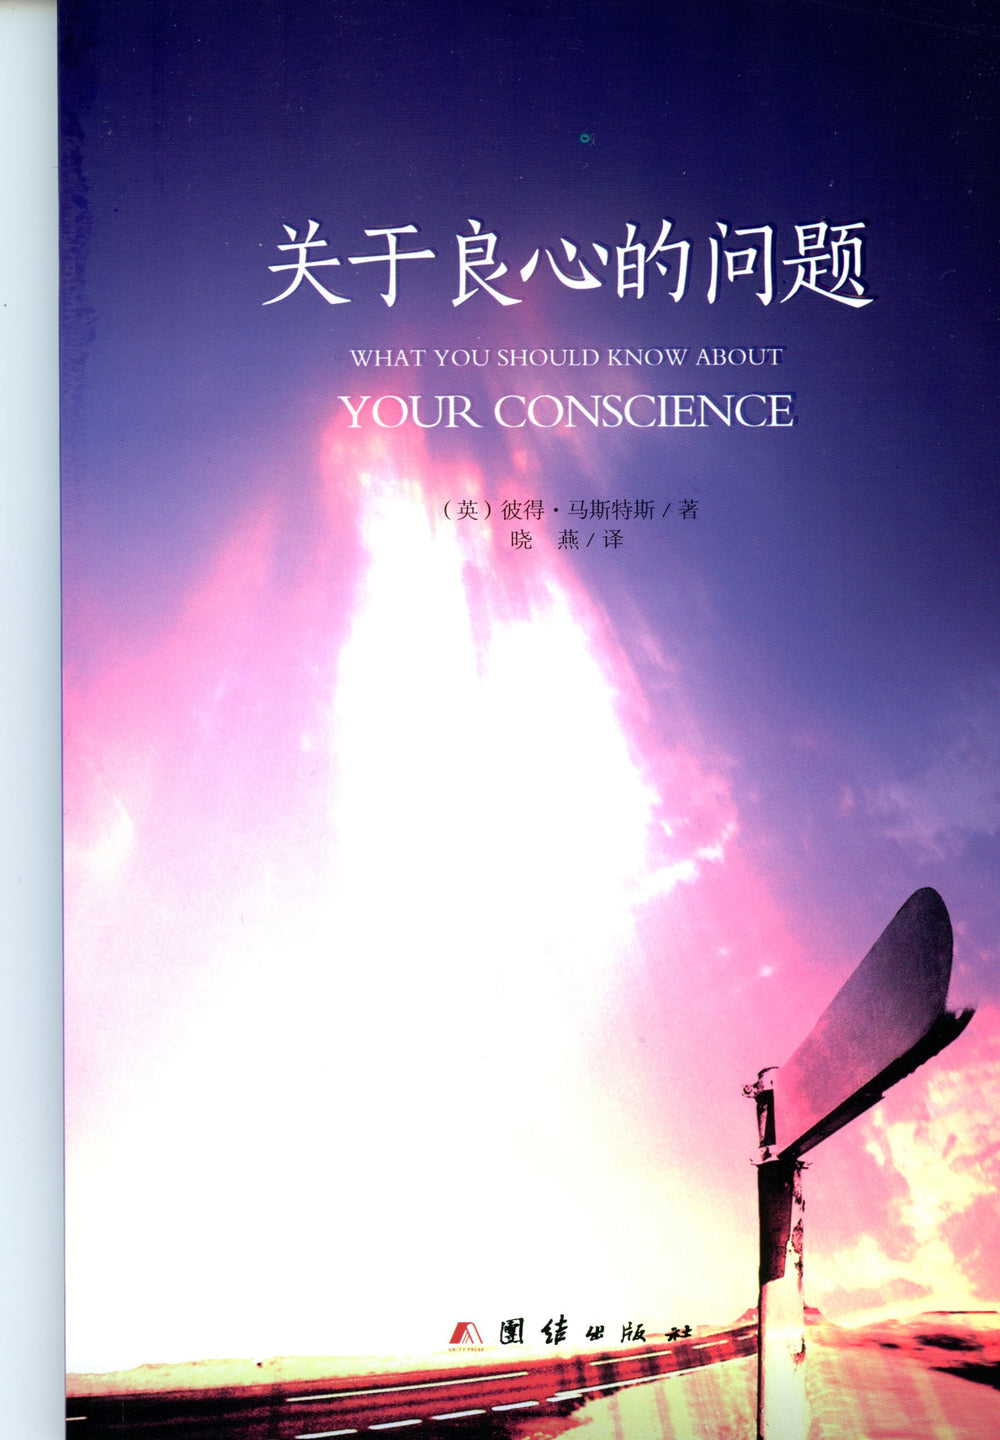 Chinese What you should know about your conscience